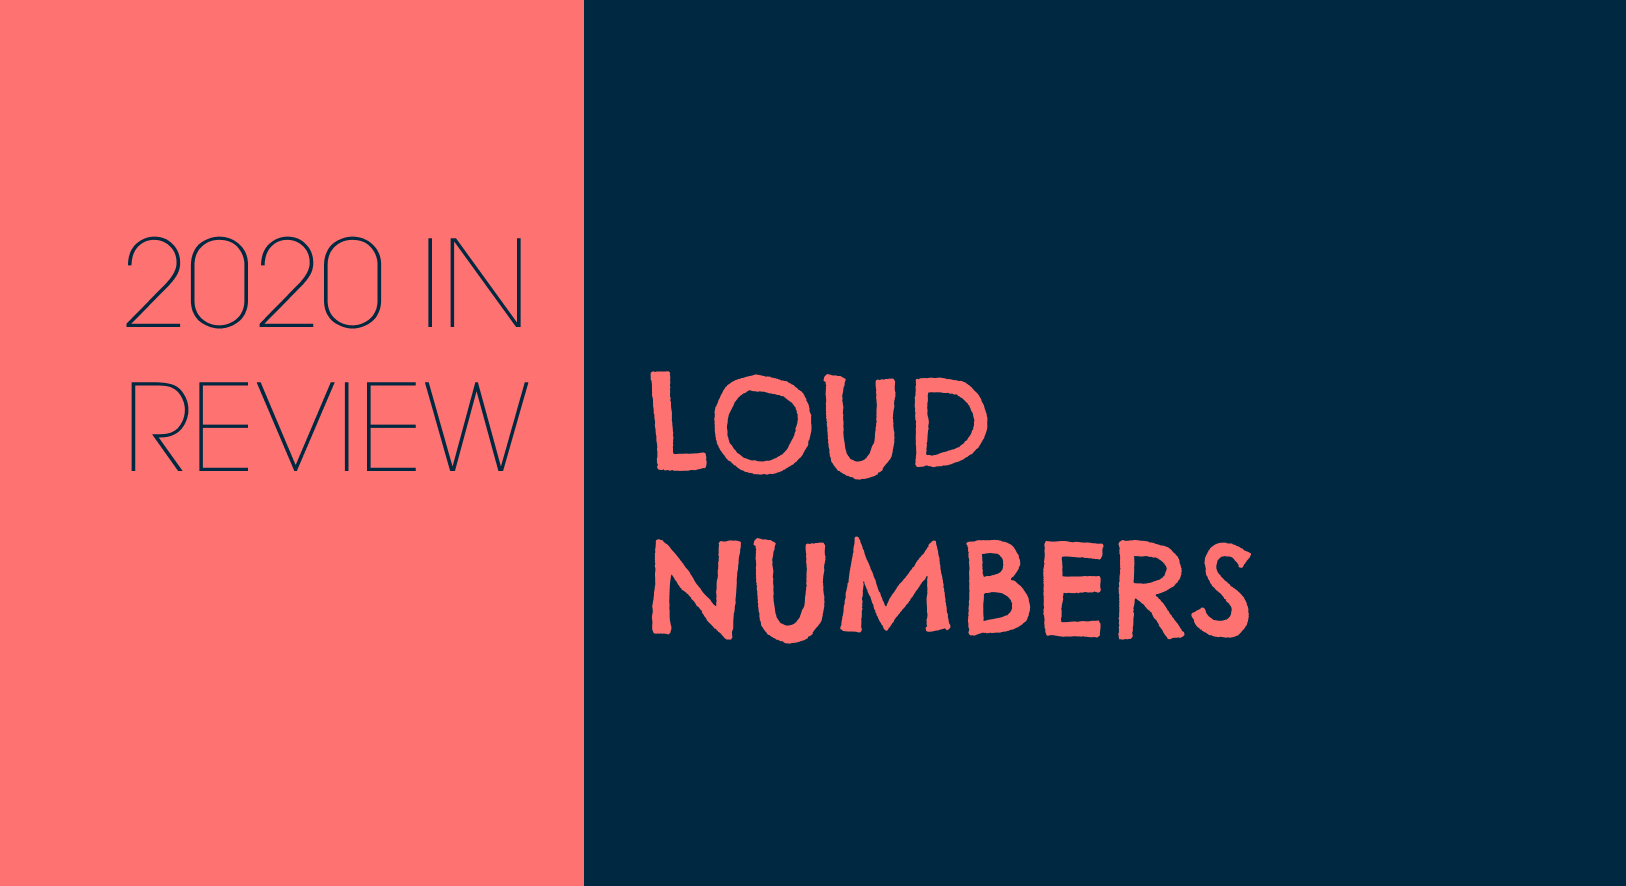 2020 in Review: Loud Numbers